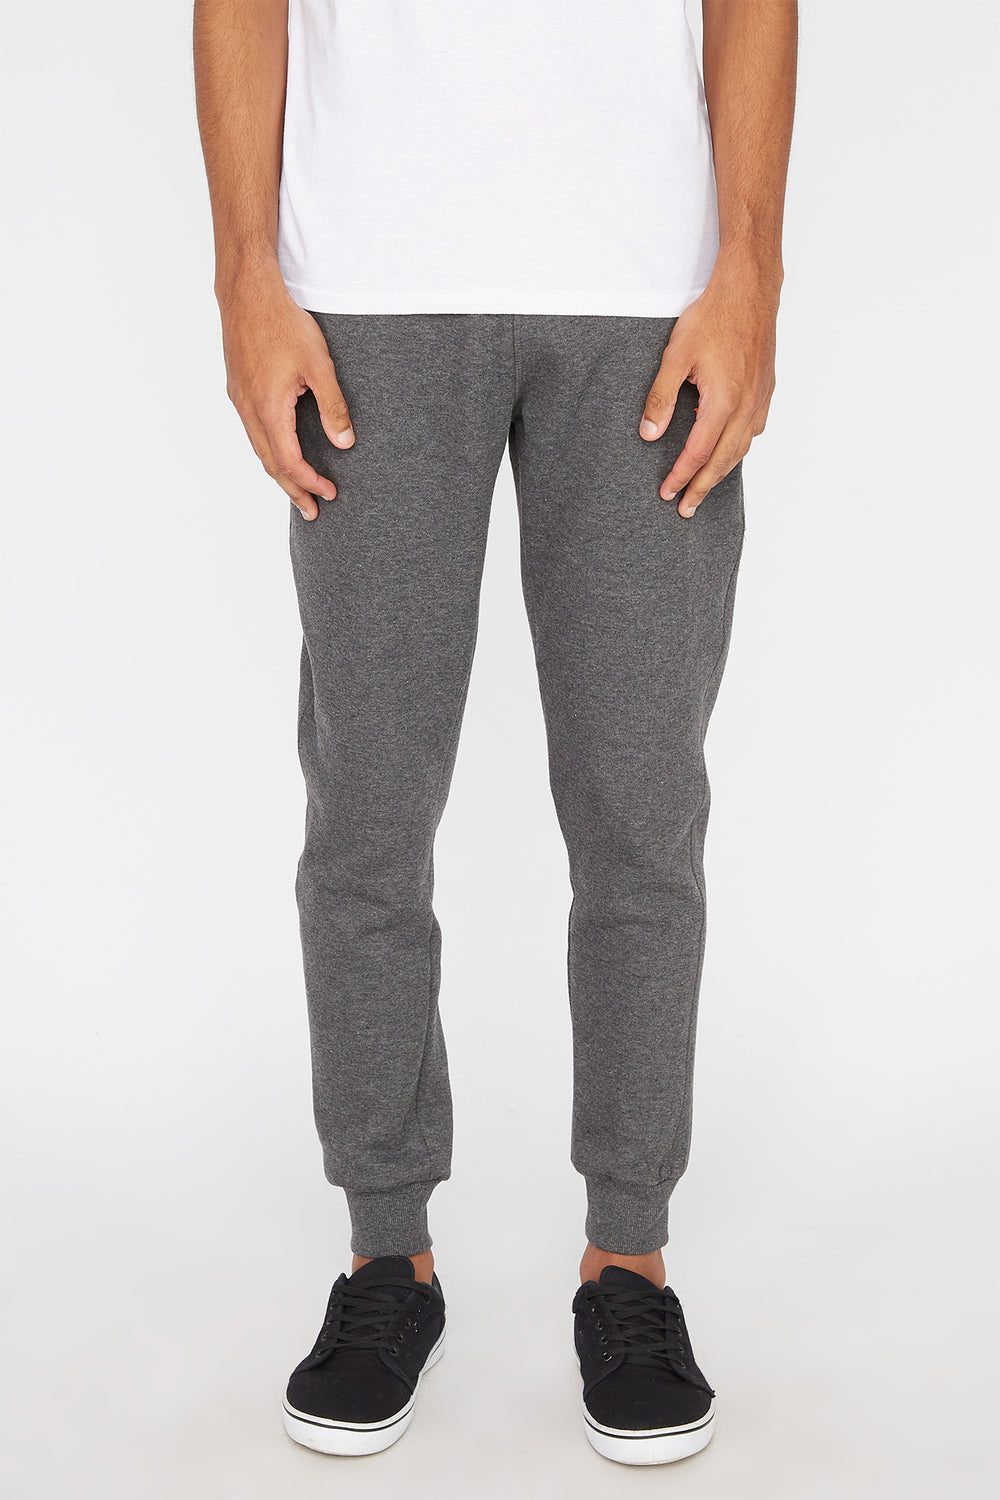 Young & Reckless Mens Neon Accent Joggers Charcoal